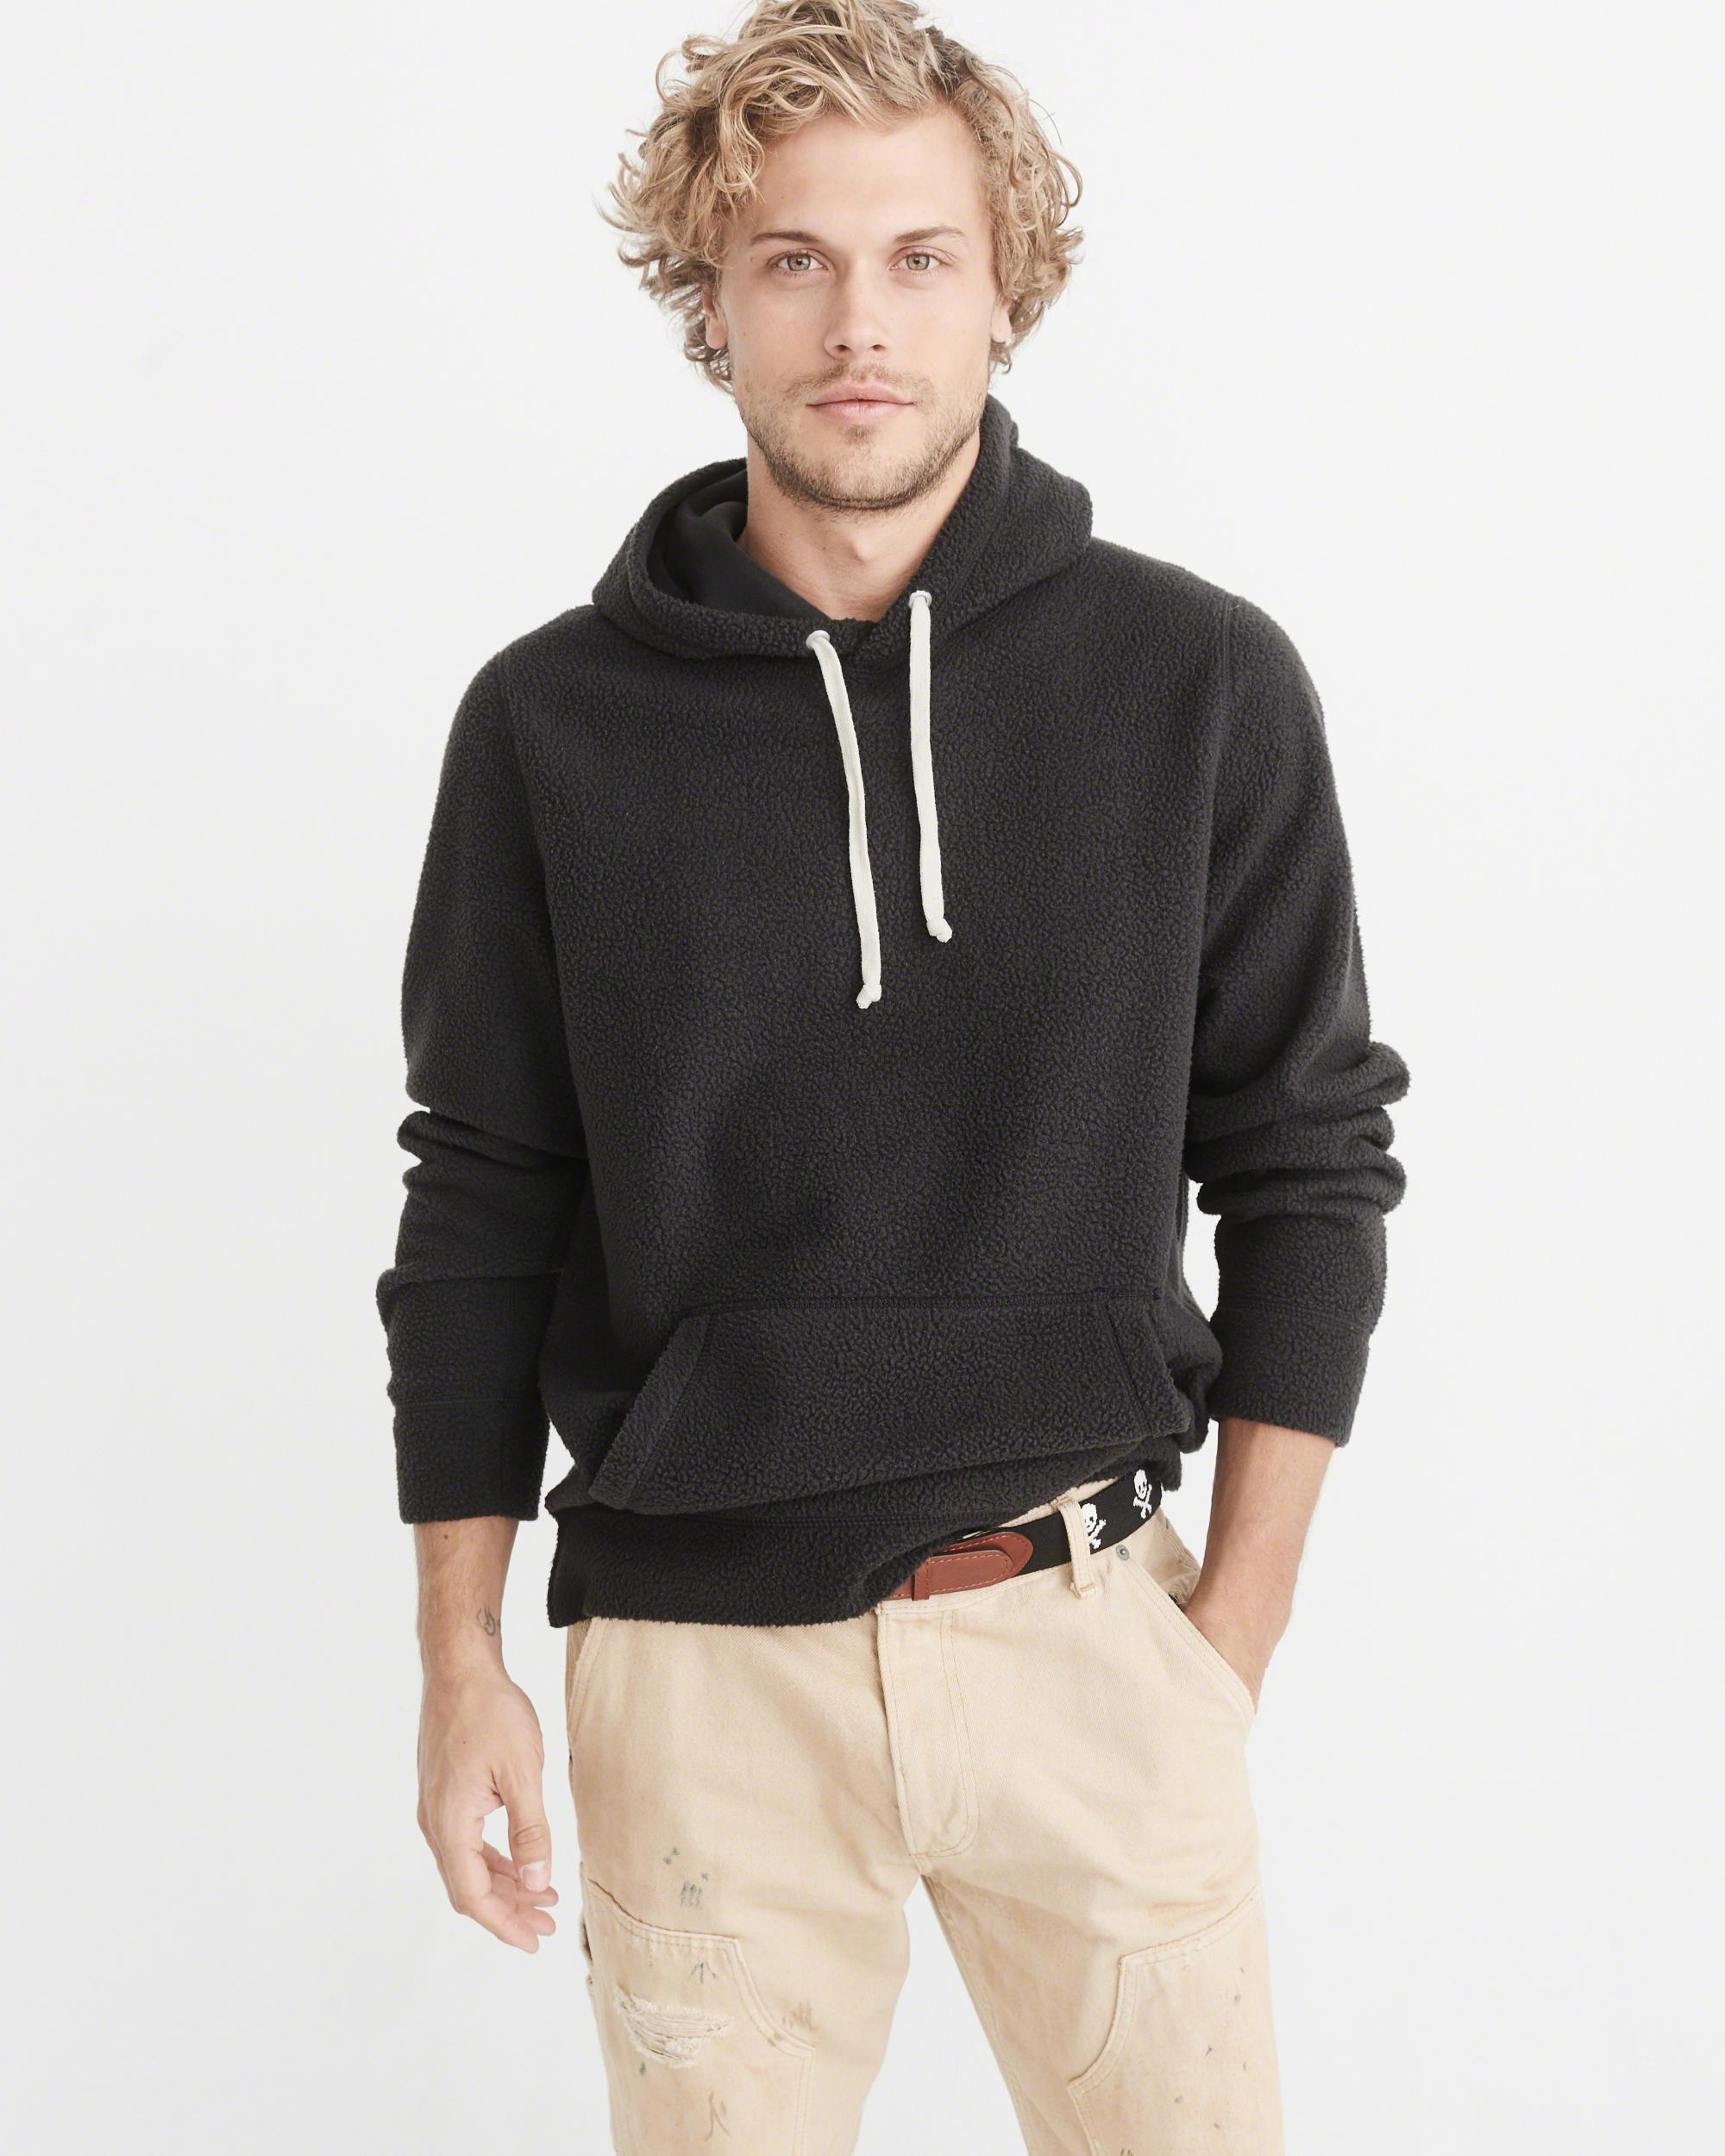 abercrombie sherpa pullover